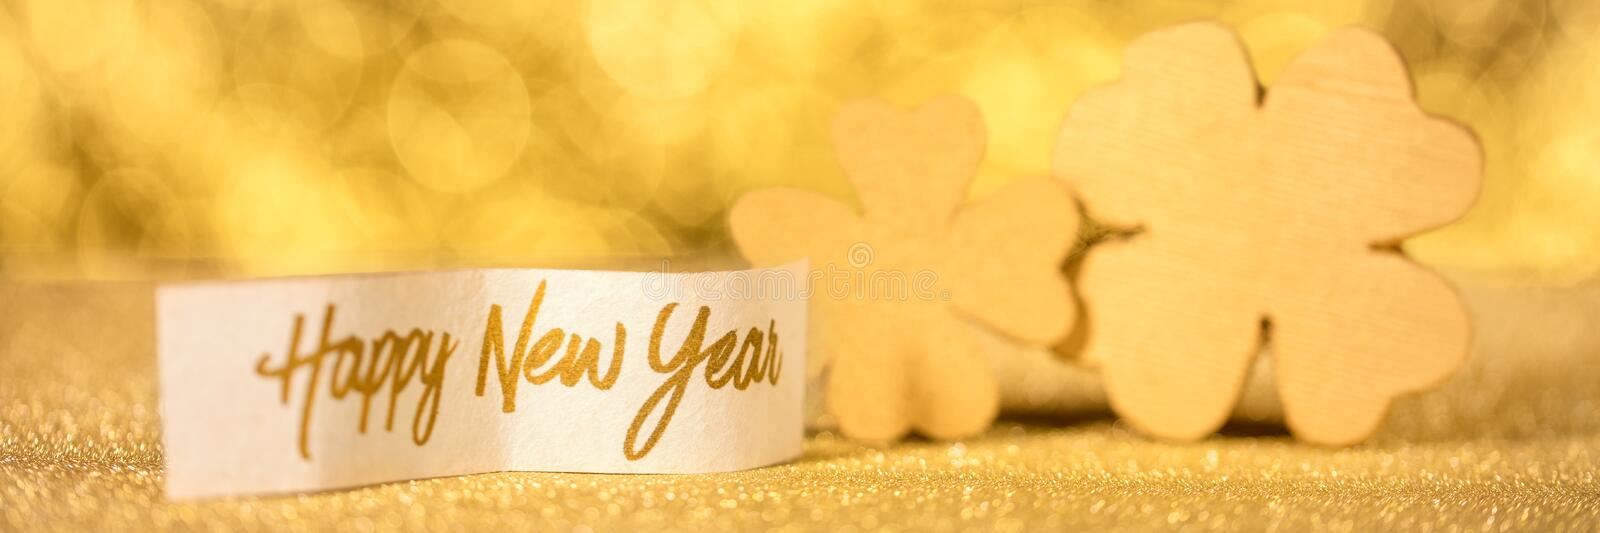 Happy new year. Concept happy new year, golden shamrocks with text stock image